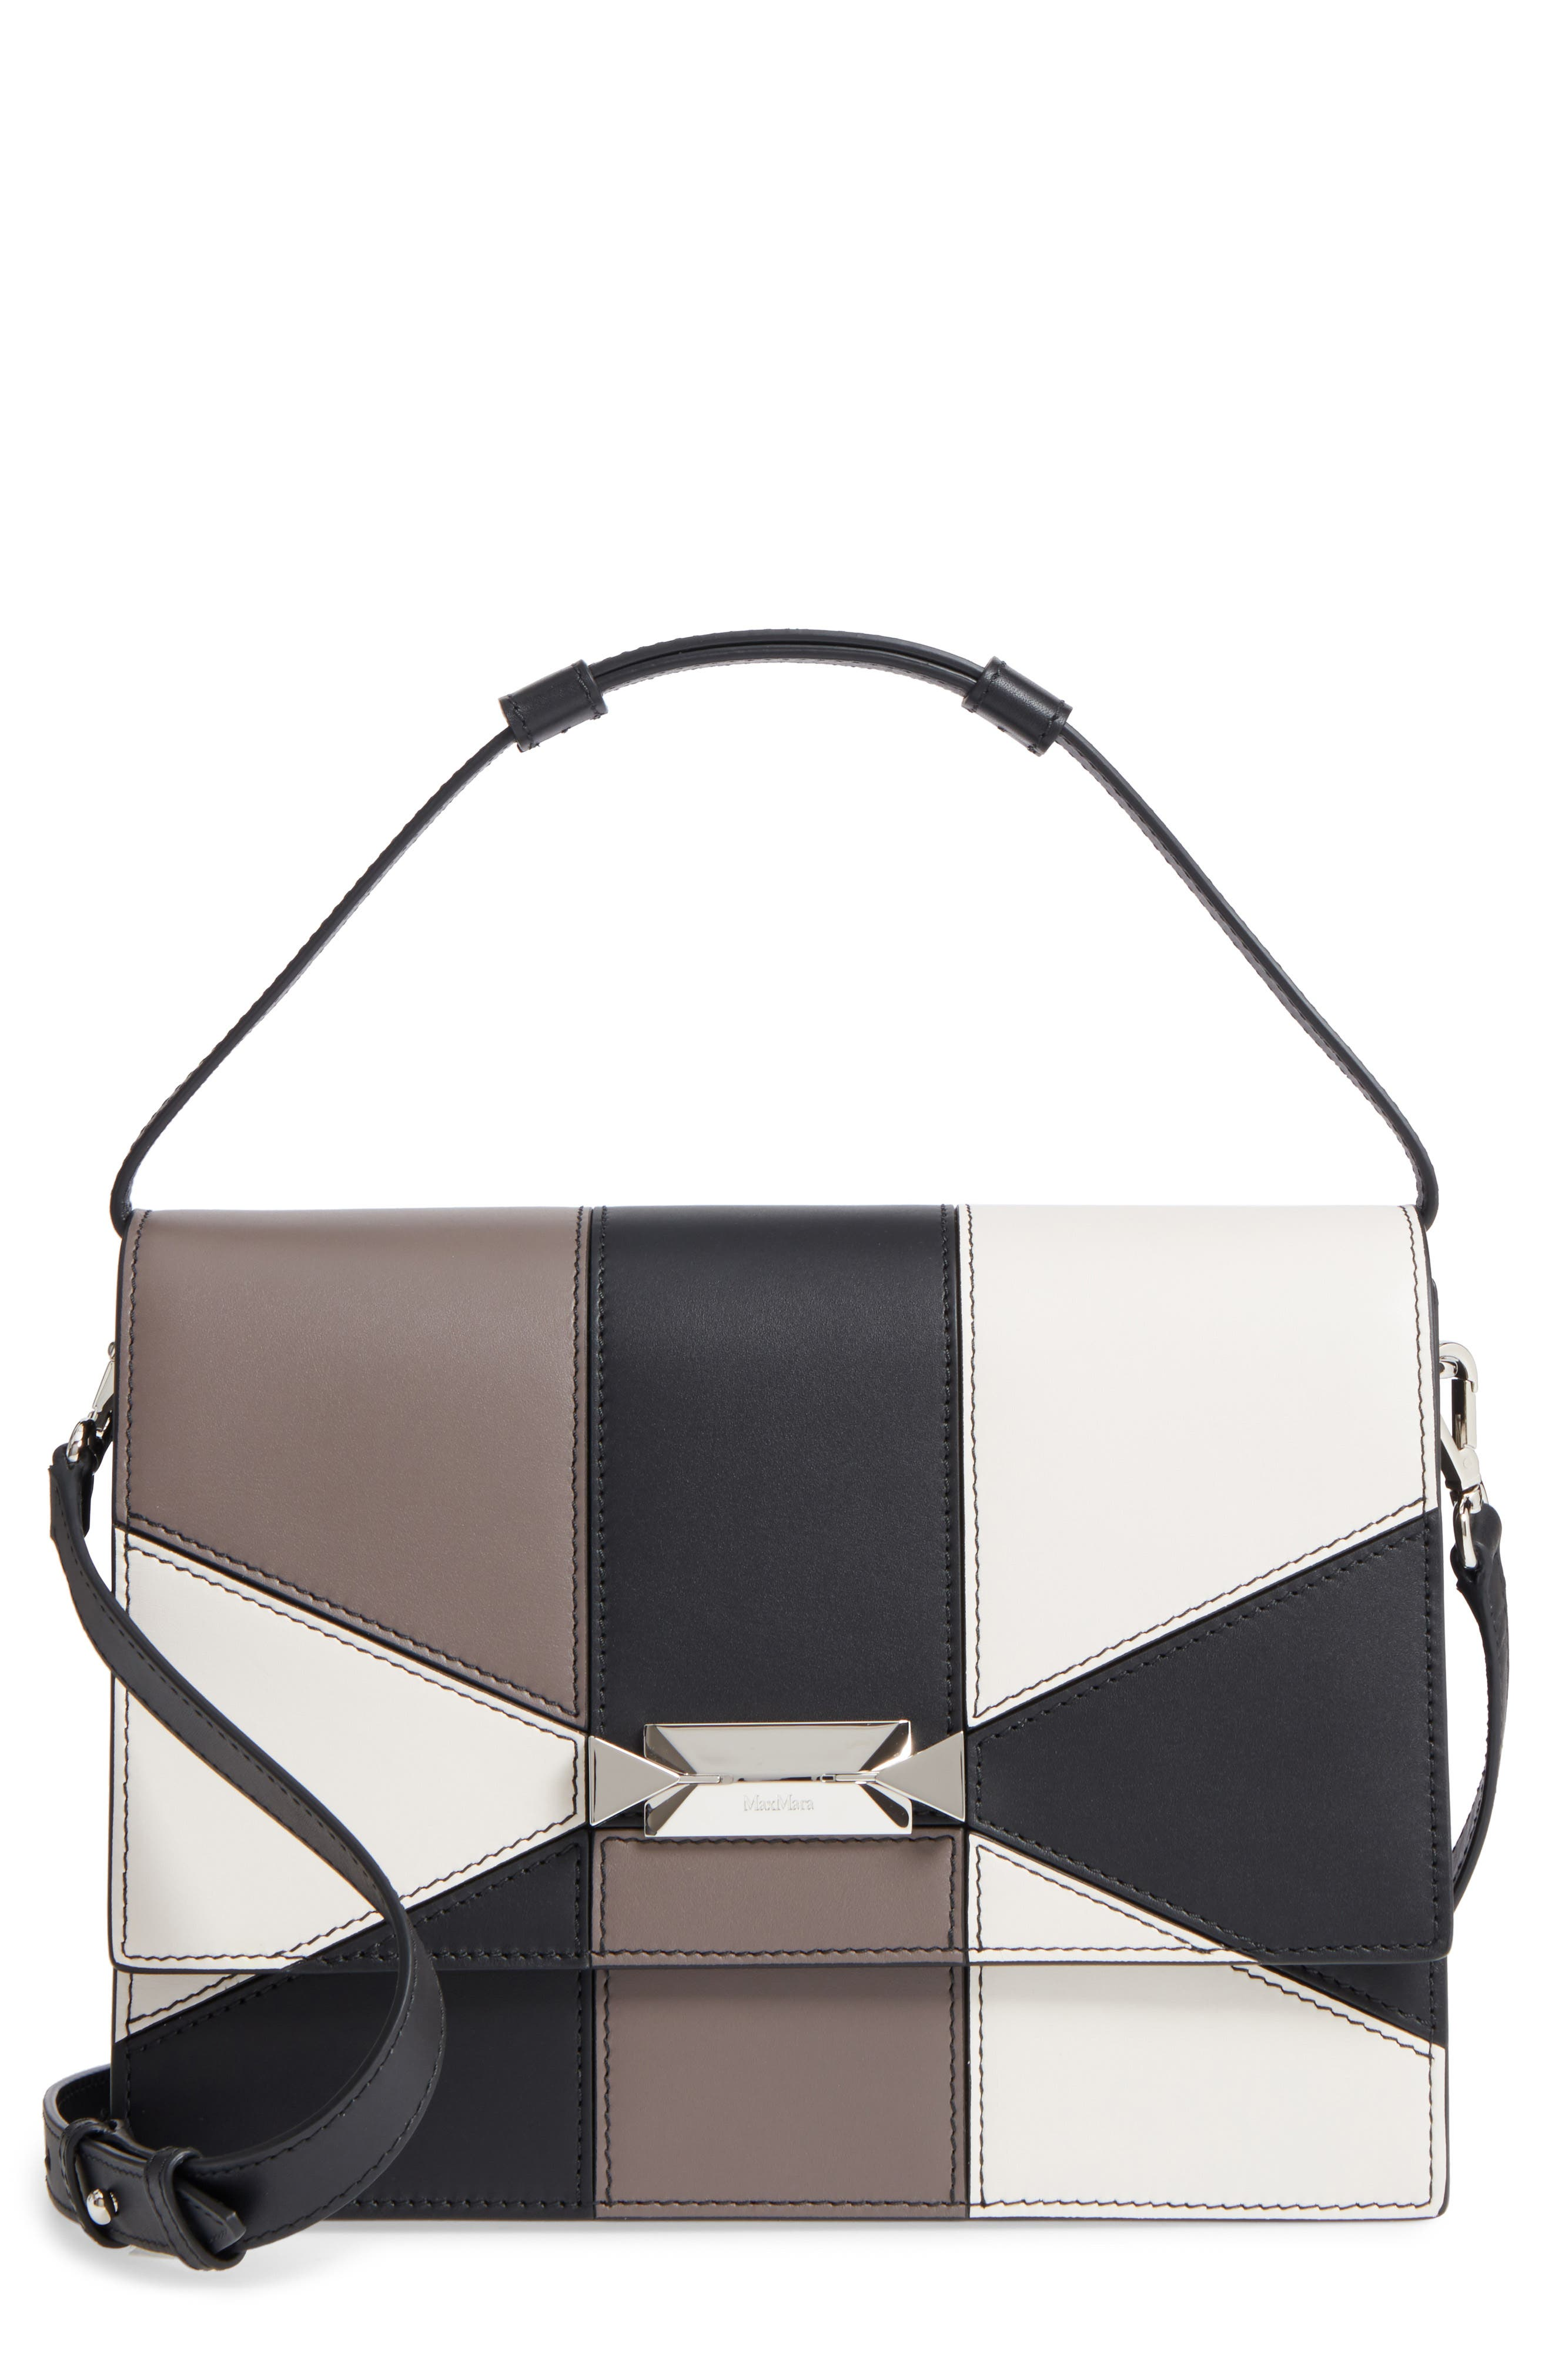 Main Image - Max Mara Patchwork Butterfly Calfskin Leather Top Handle Satchel